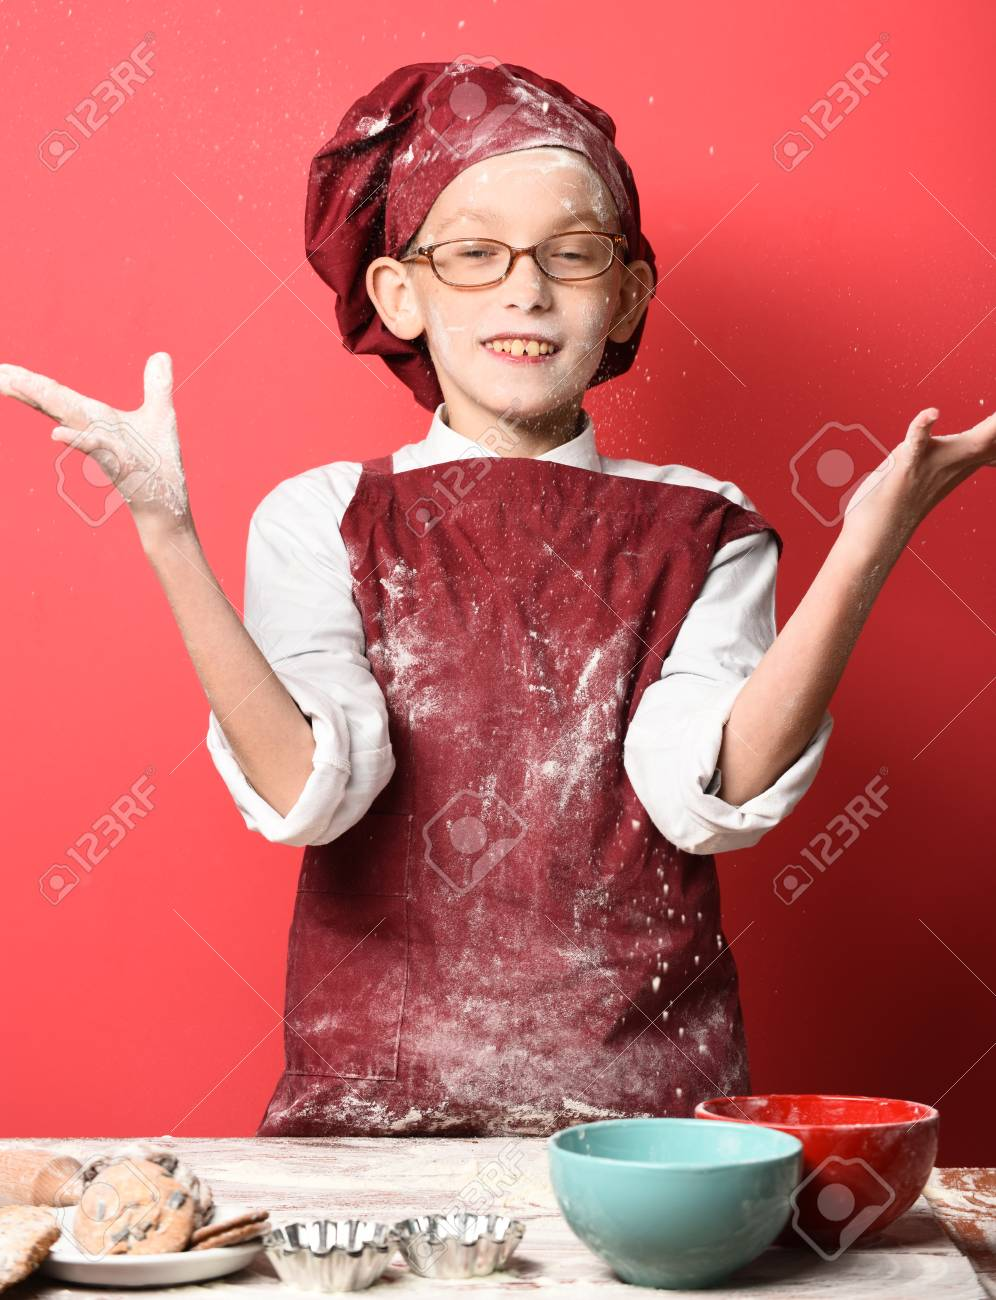 Young Boy Cute Cook Chef In Uniform And Hat On Stained Surprised 996x1300